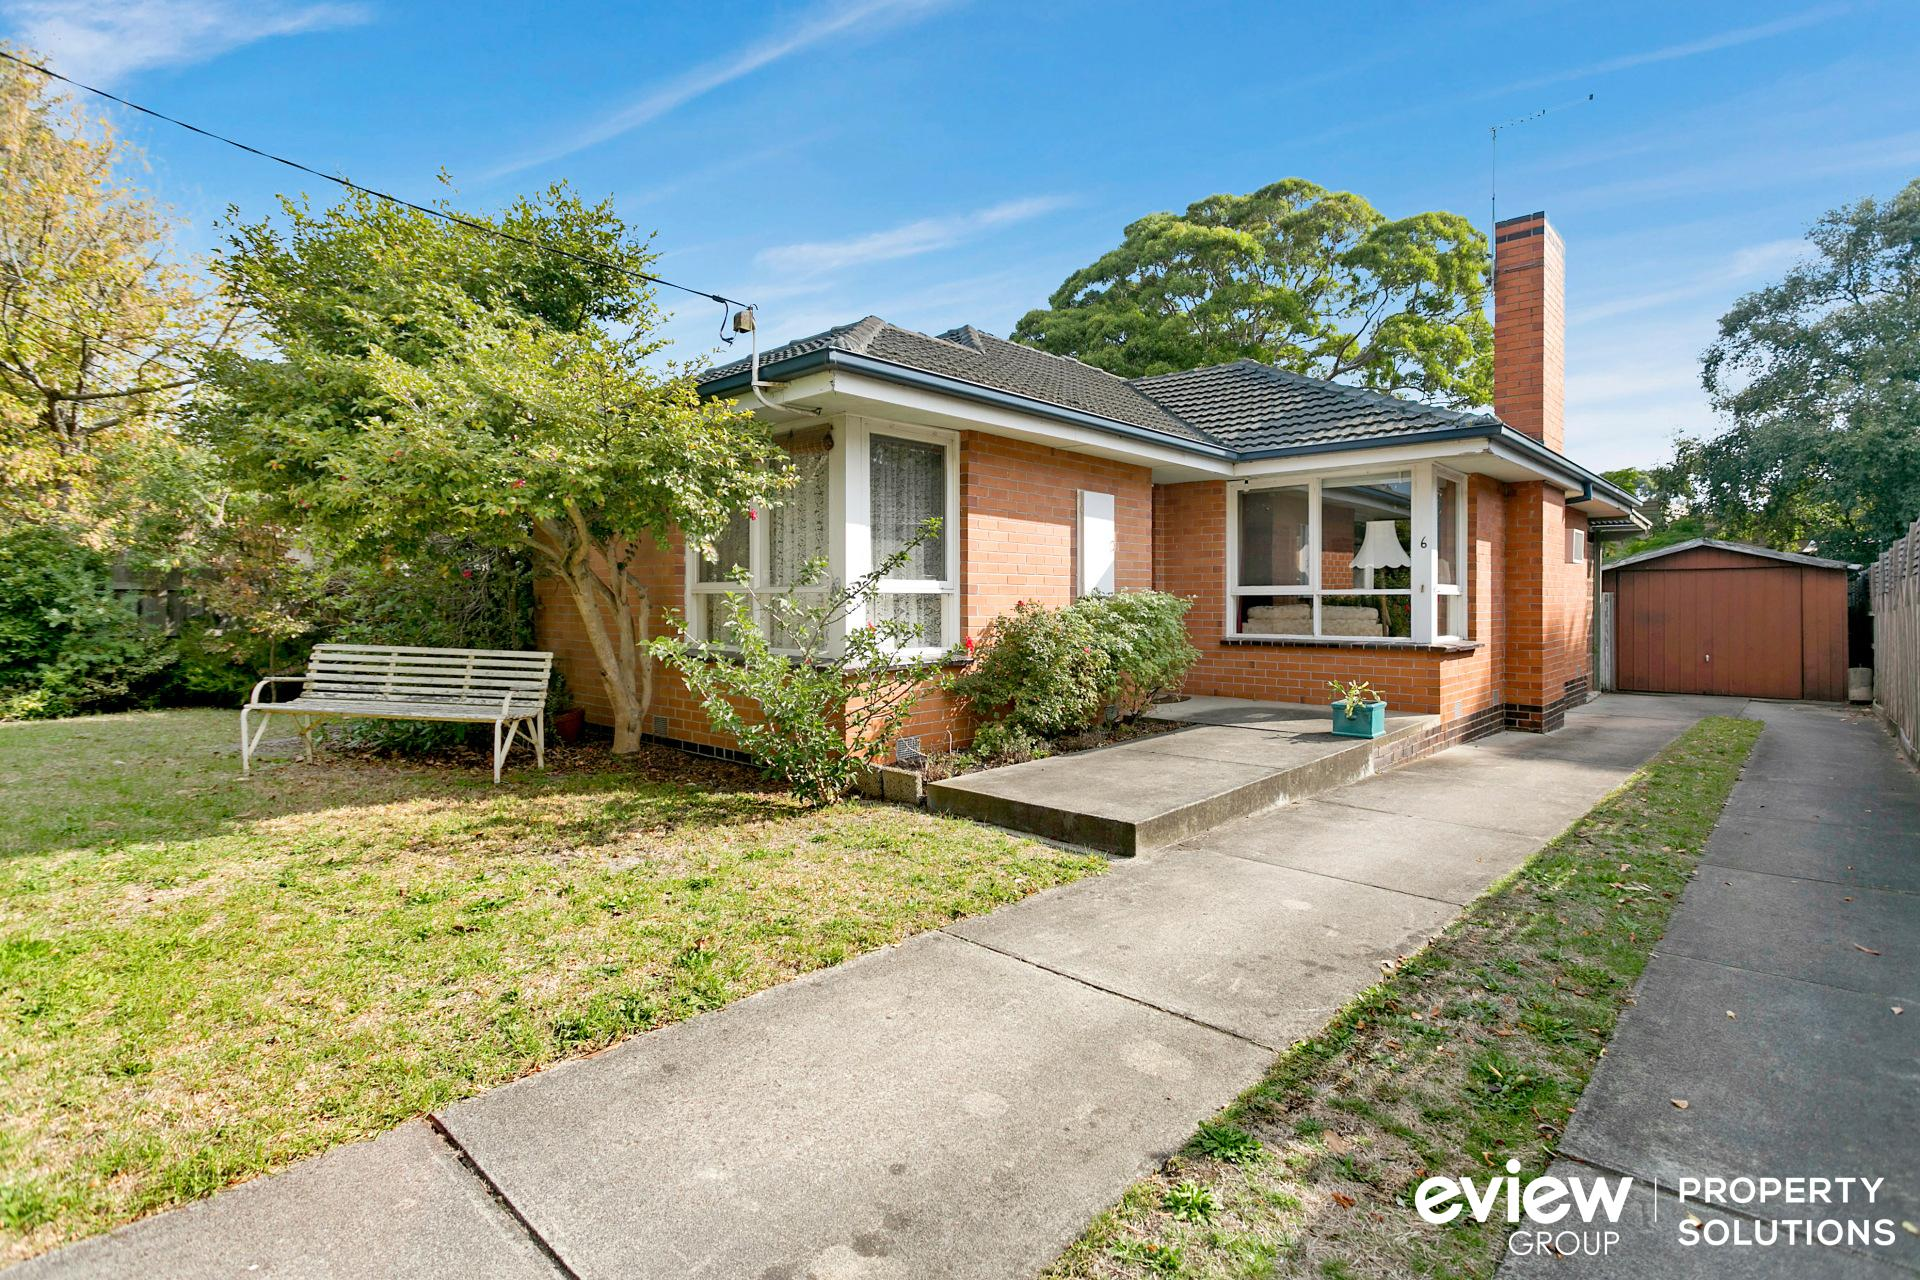 6 Banool Court, FRANKSTON SOUTH, VIC, 3199 - Image